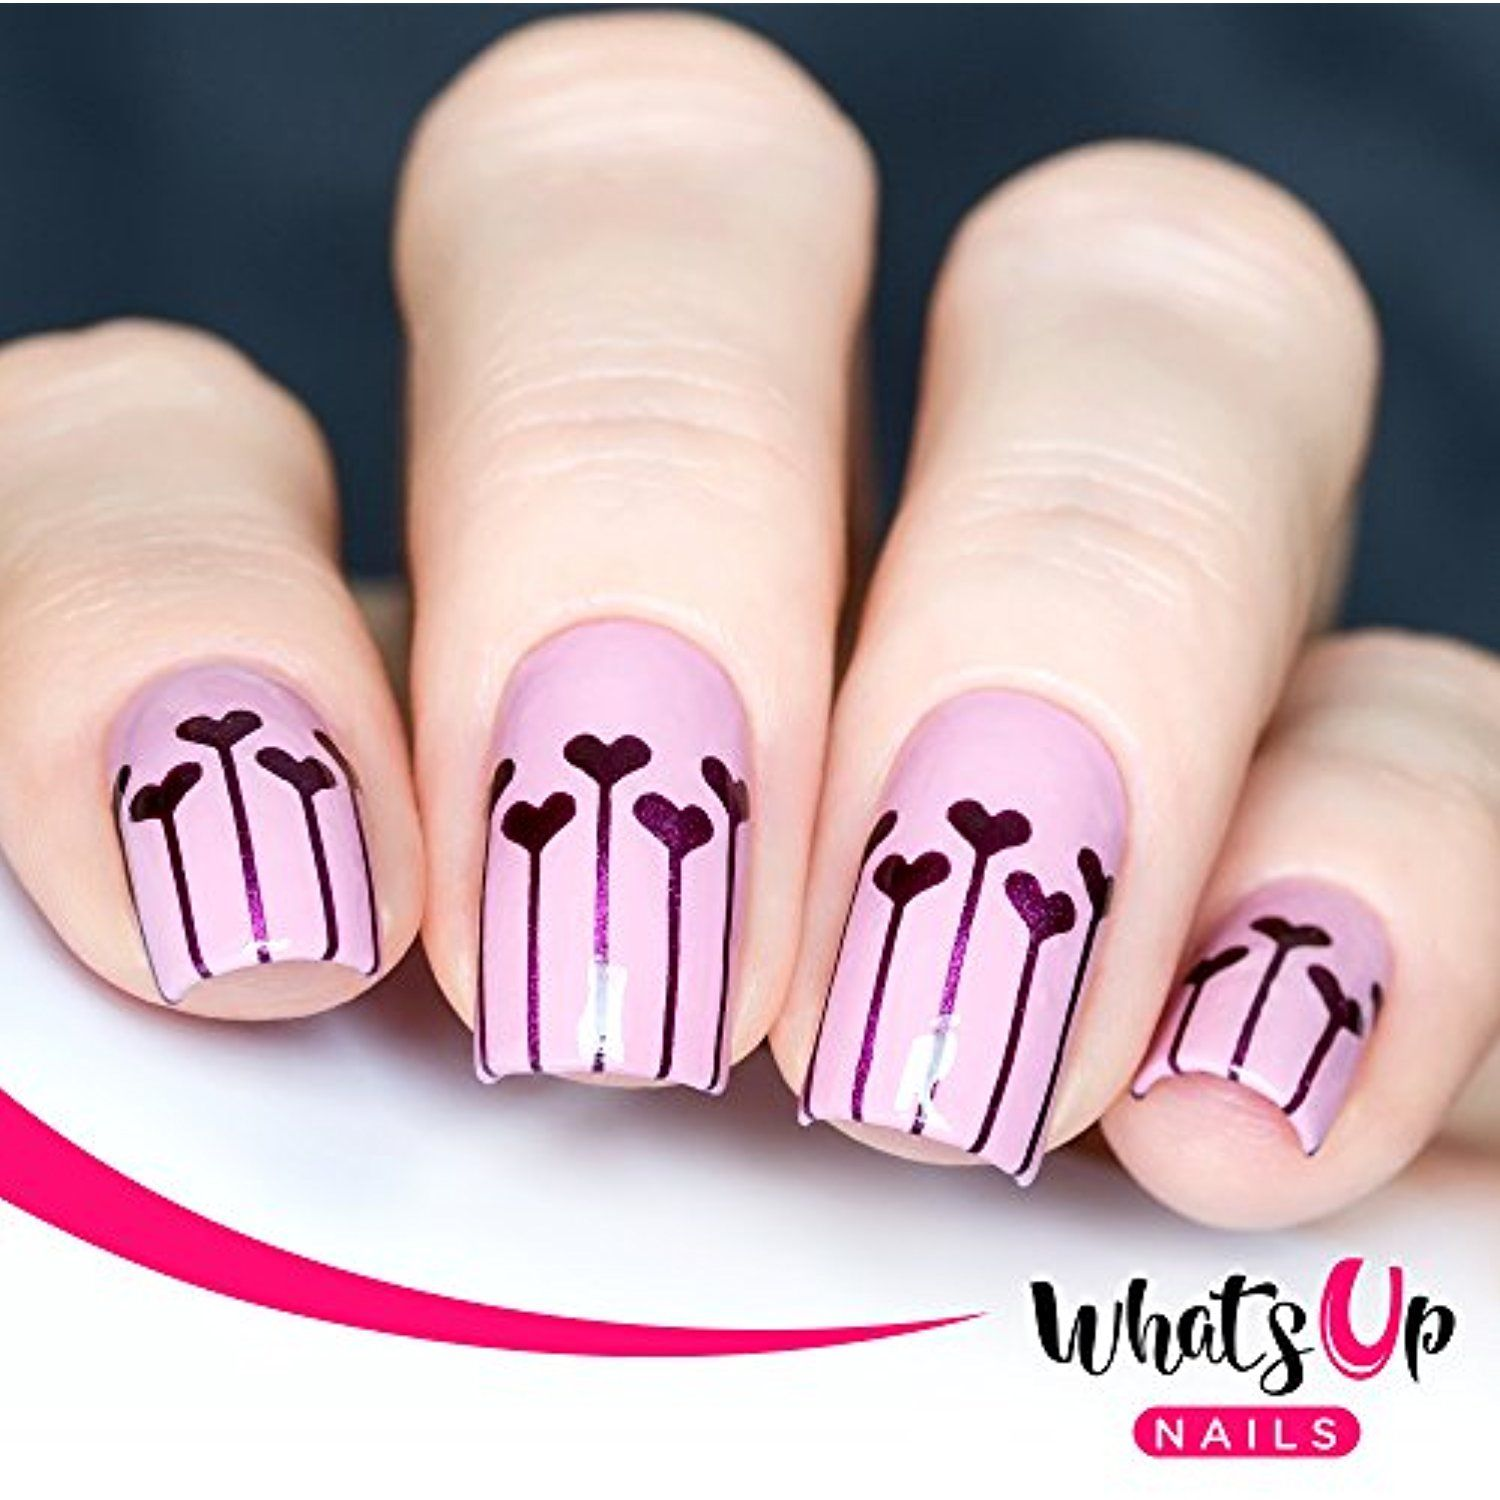 Whats Up Nails - Balloons Nail Stencils Stickers Vinyls for Nail Art ...